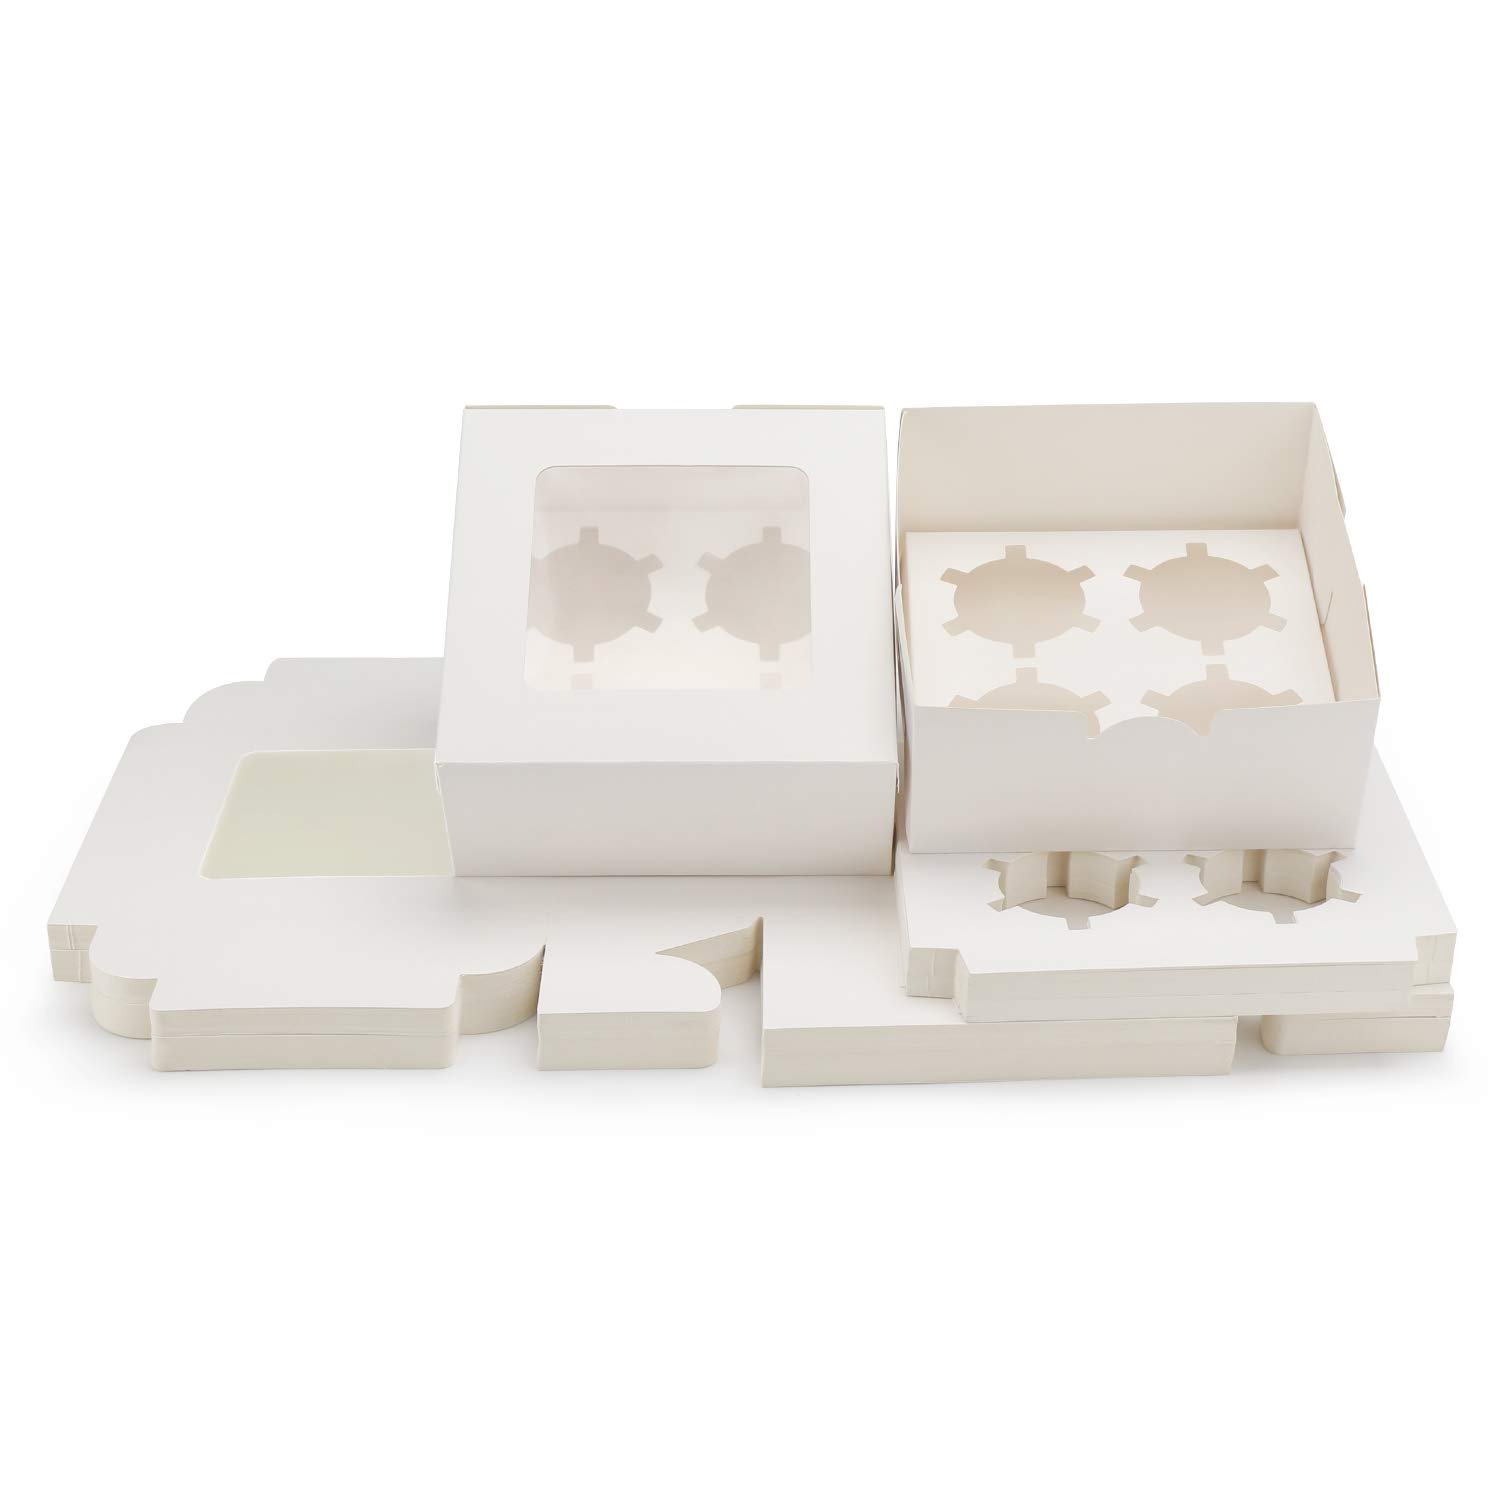 Kraft Cupcake Boxes, Eusoar 50pcs Food Grade White Color Cupcake Carrier with Insert and Display Window Fits 4 Cupcakes or Muffins (6.4'' x 6.3'' inch)